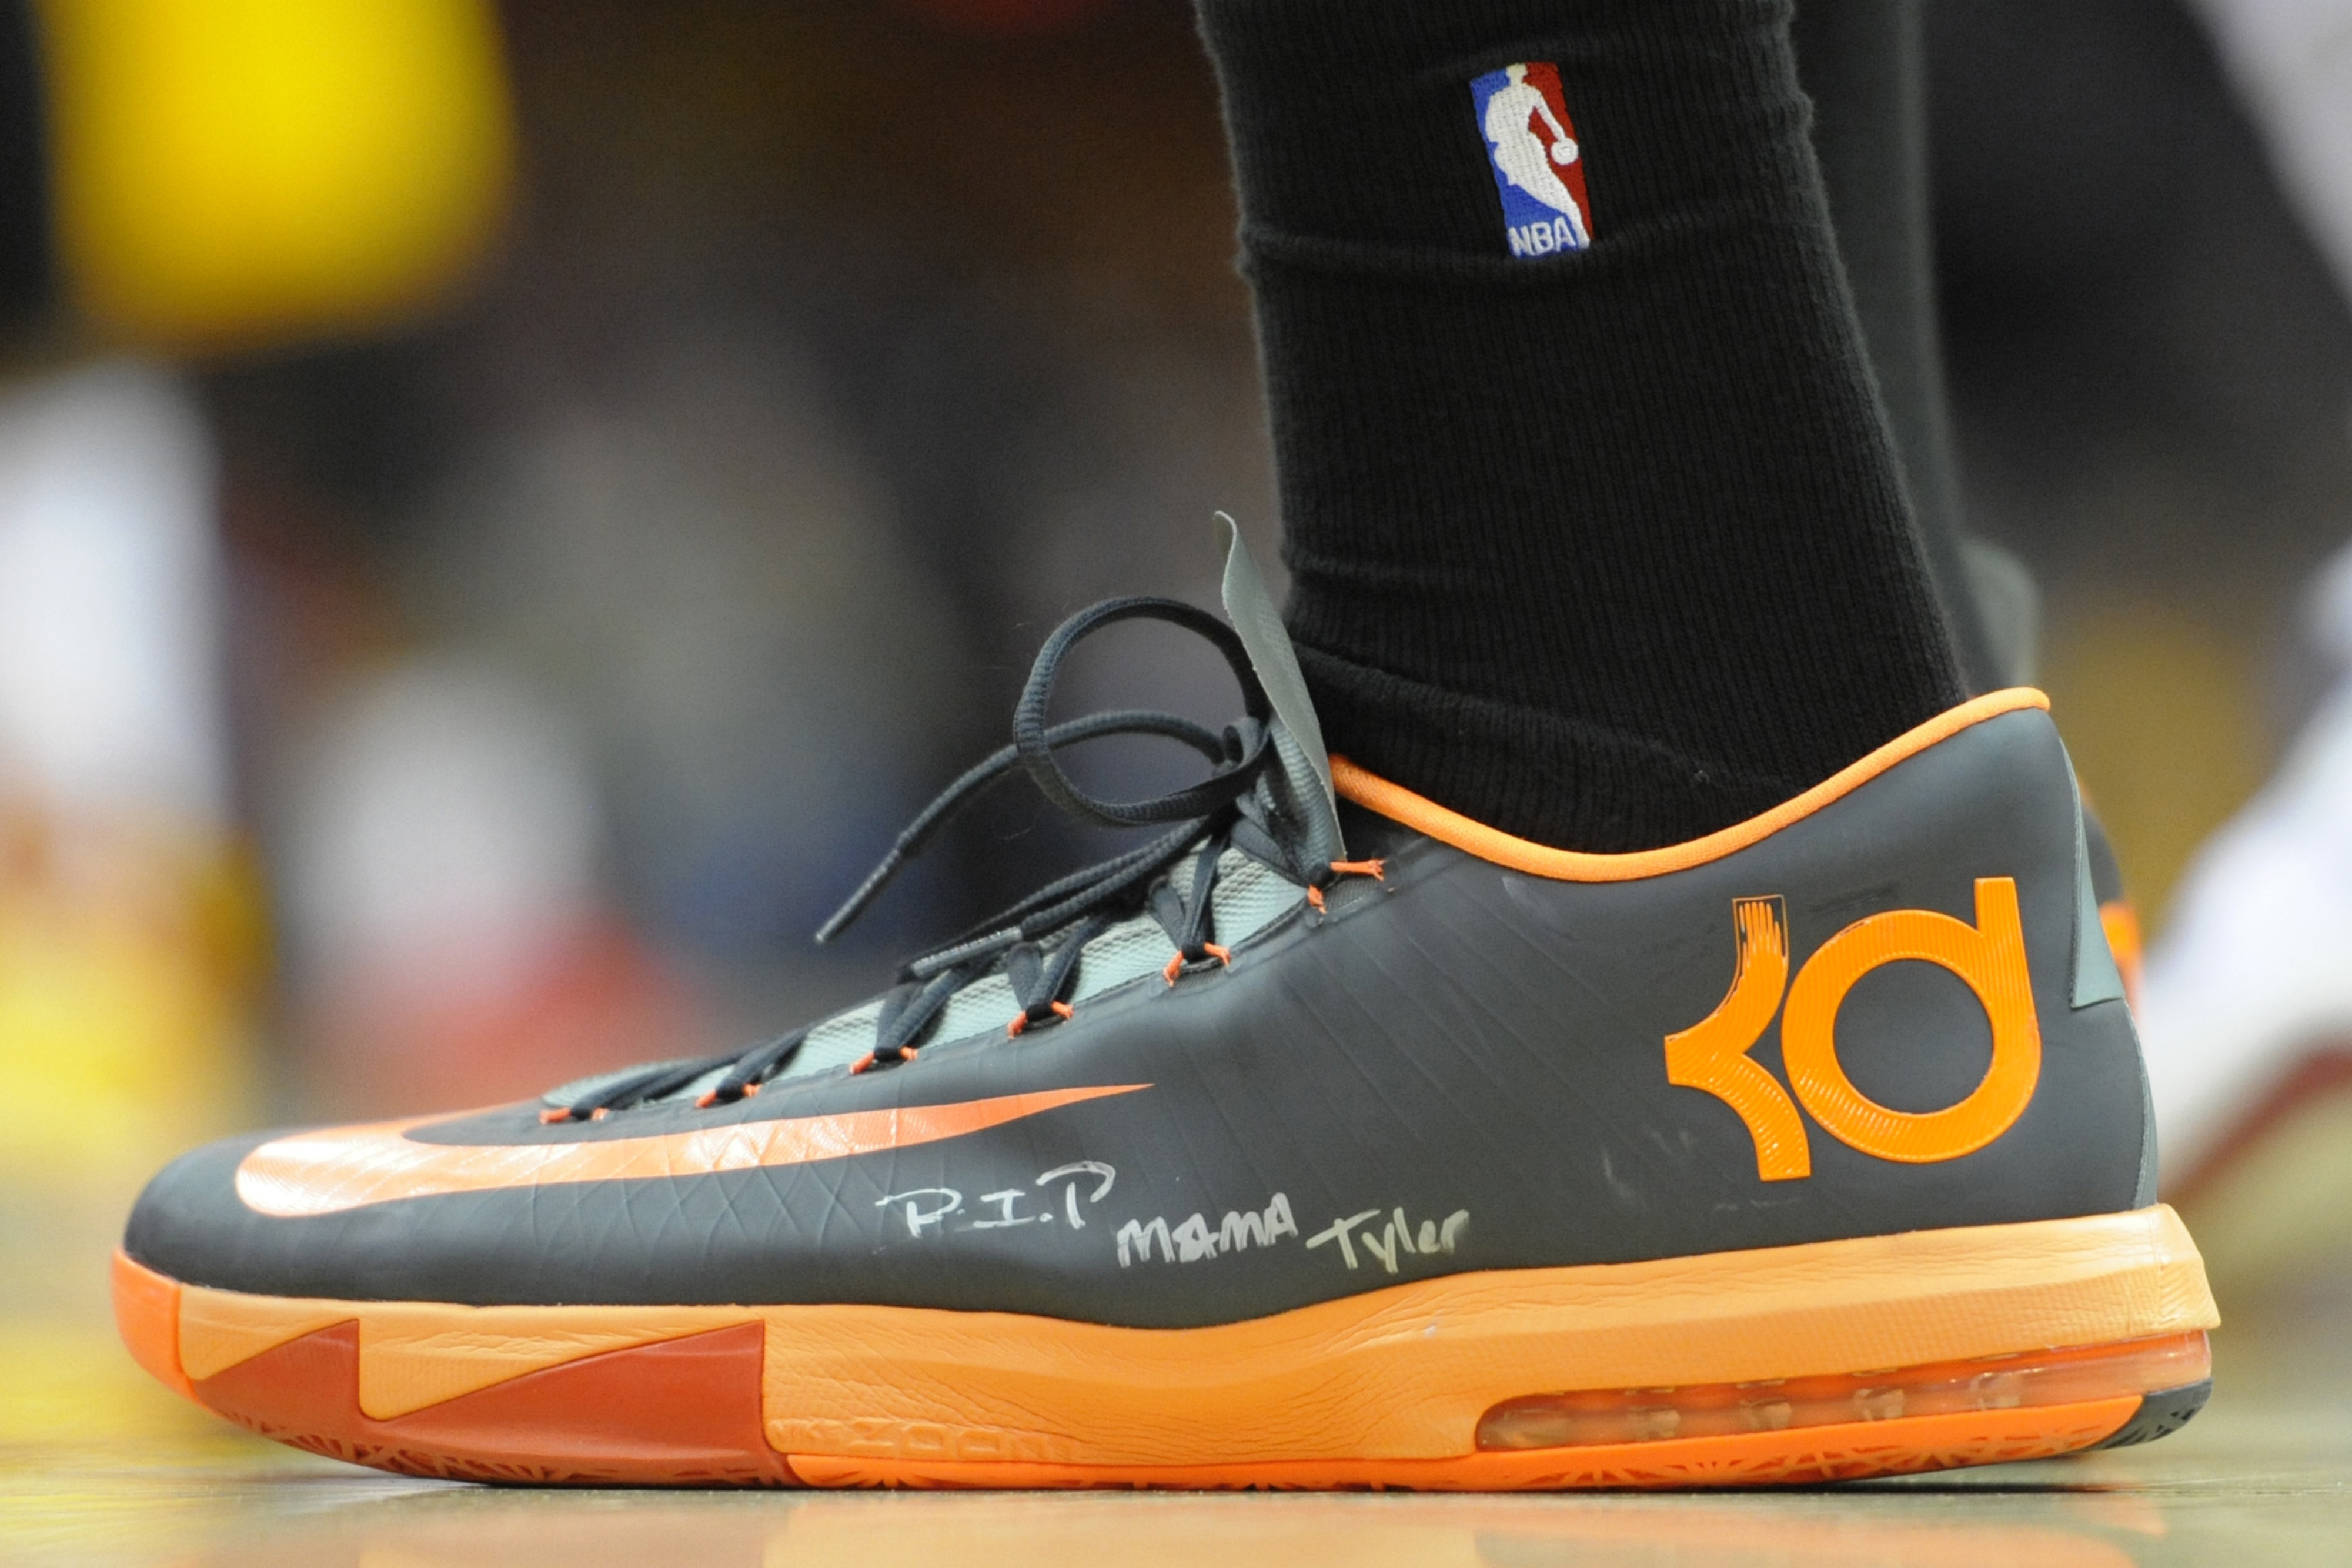 Kevin Durant to stay with Nike over Under Armour, according to report